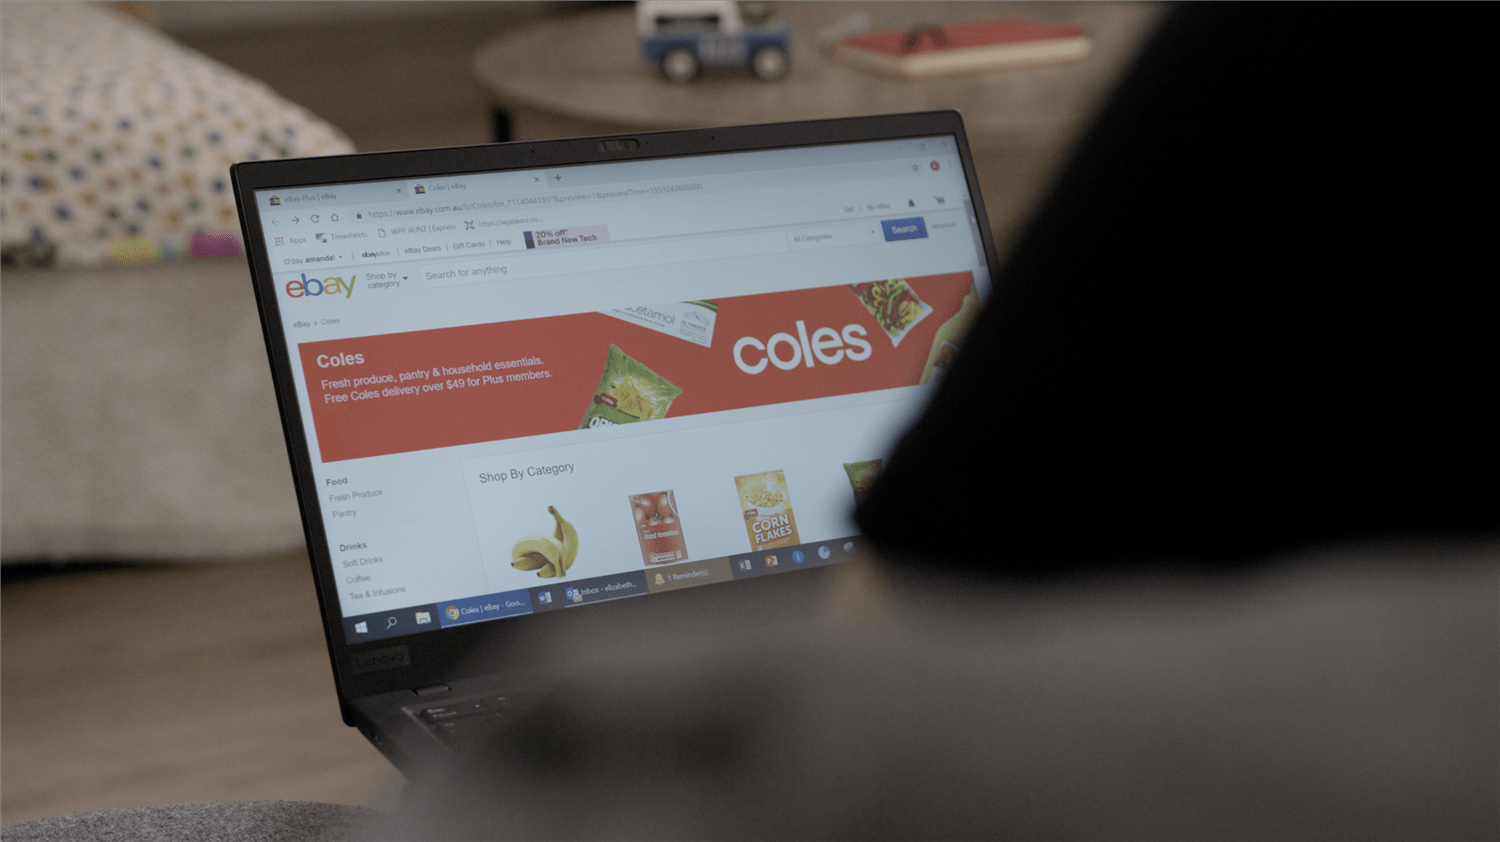 A step closer to online groceries – Coles groceries are now on eBay